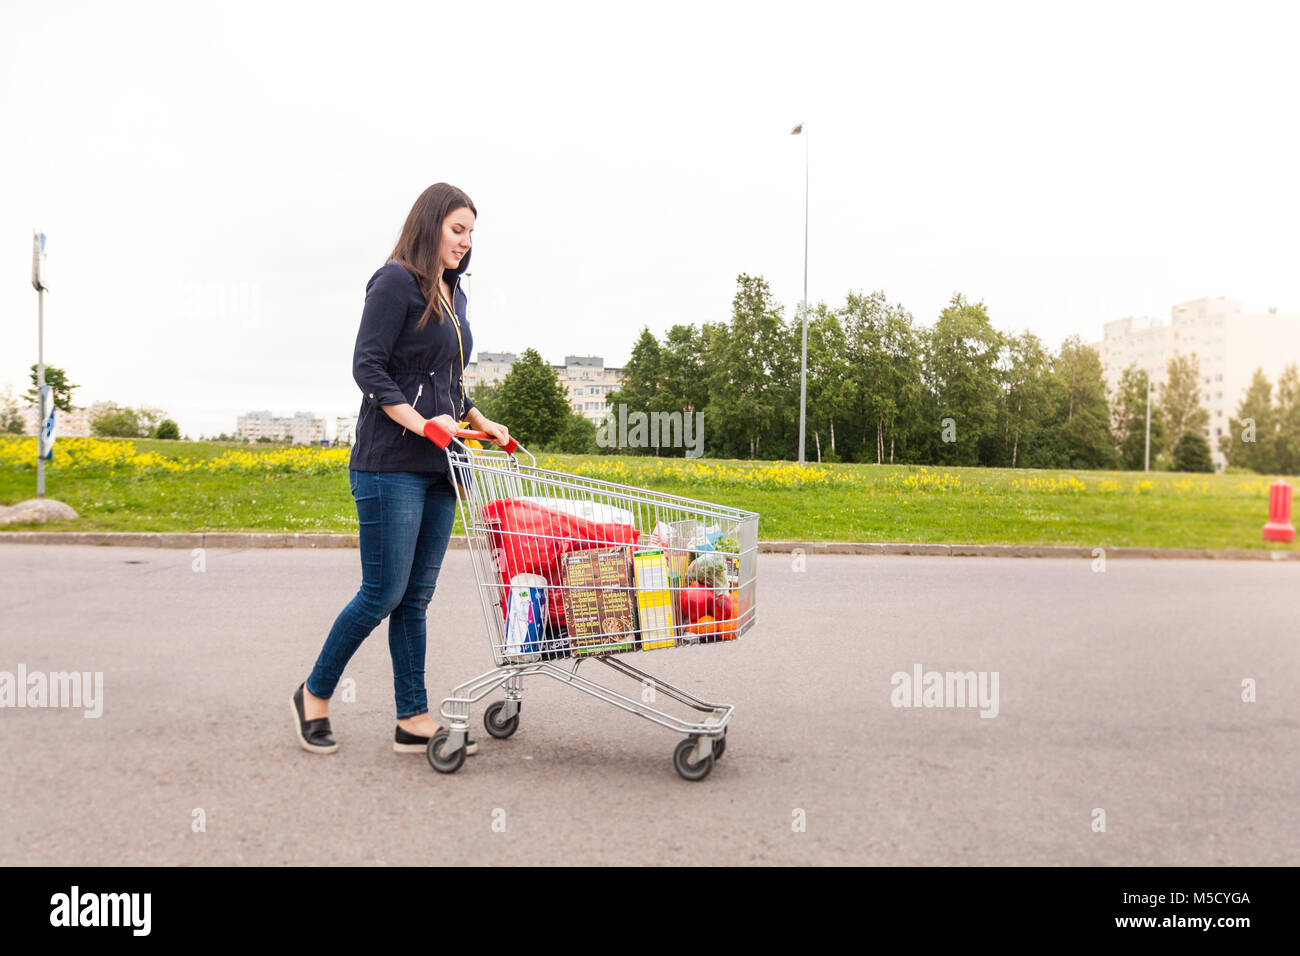 Cute smiling teen looks into a camera with food products she bought - Stock Image